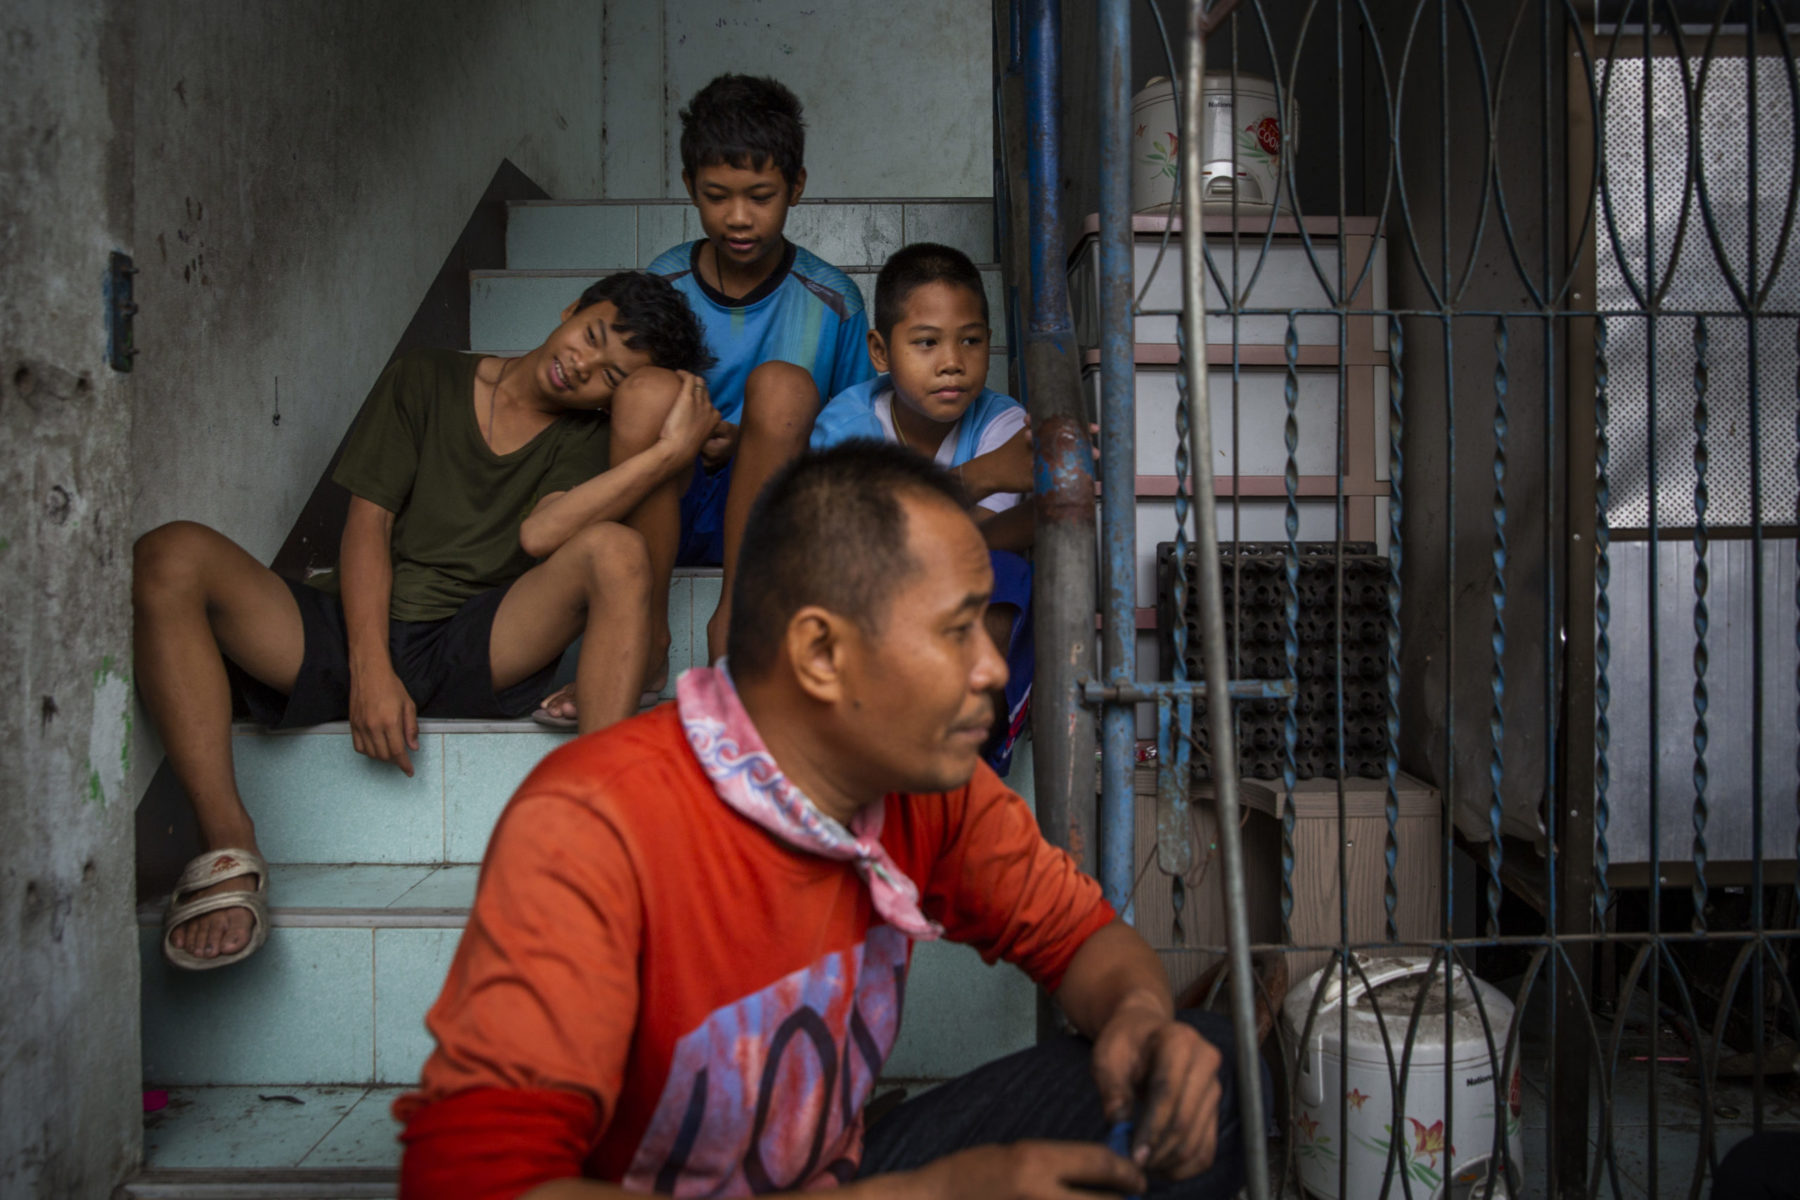 A man sits in front of his three children who are sitting on a staircase.